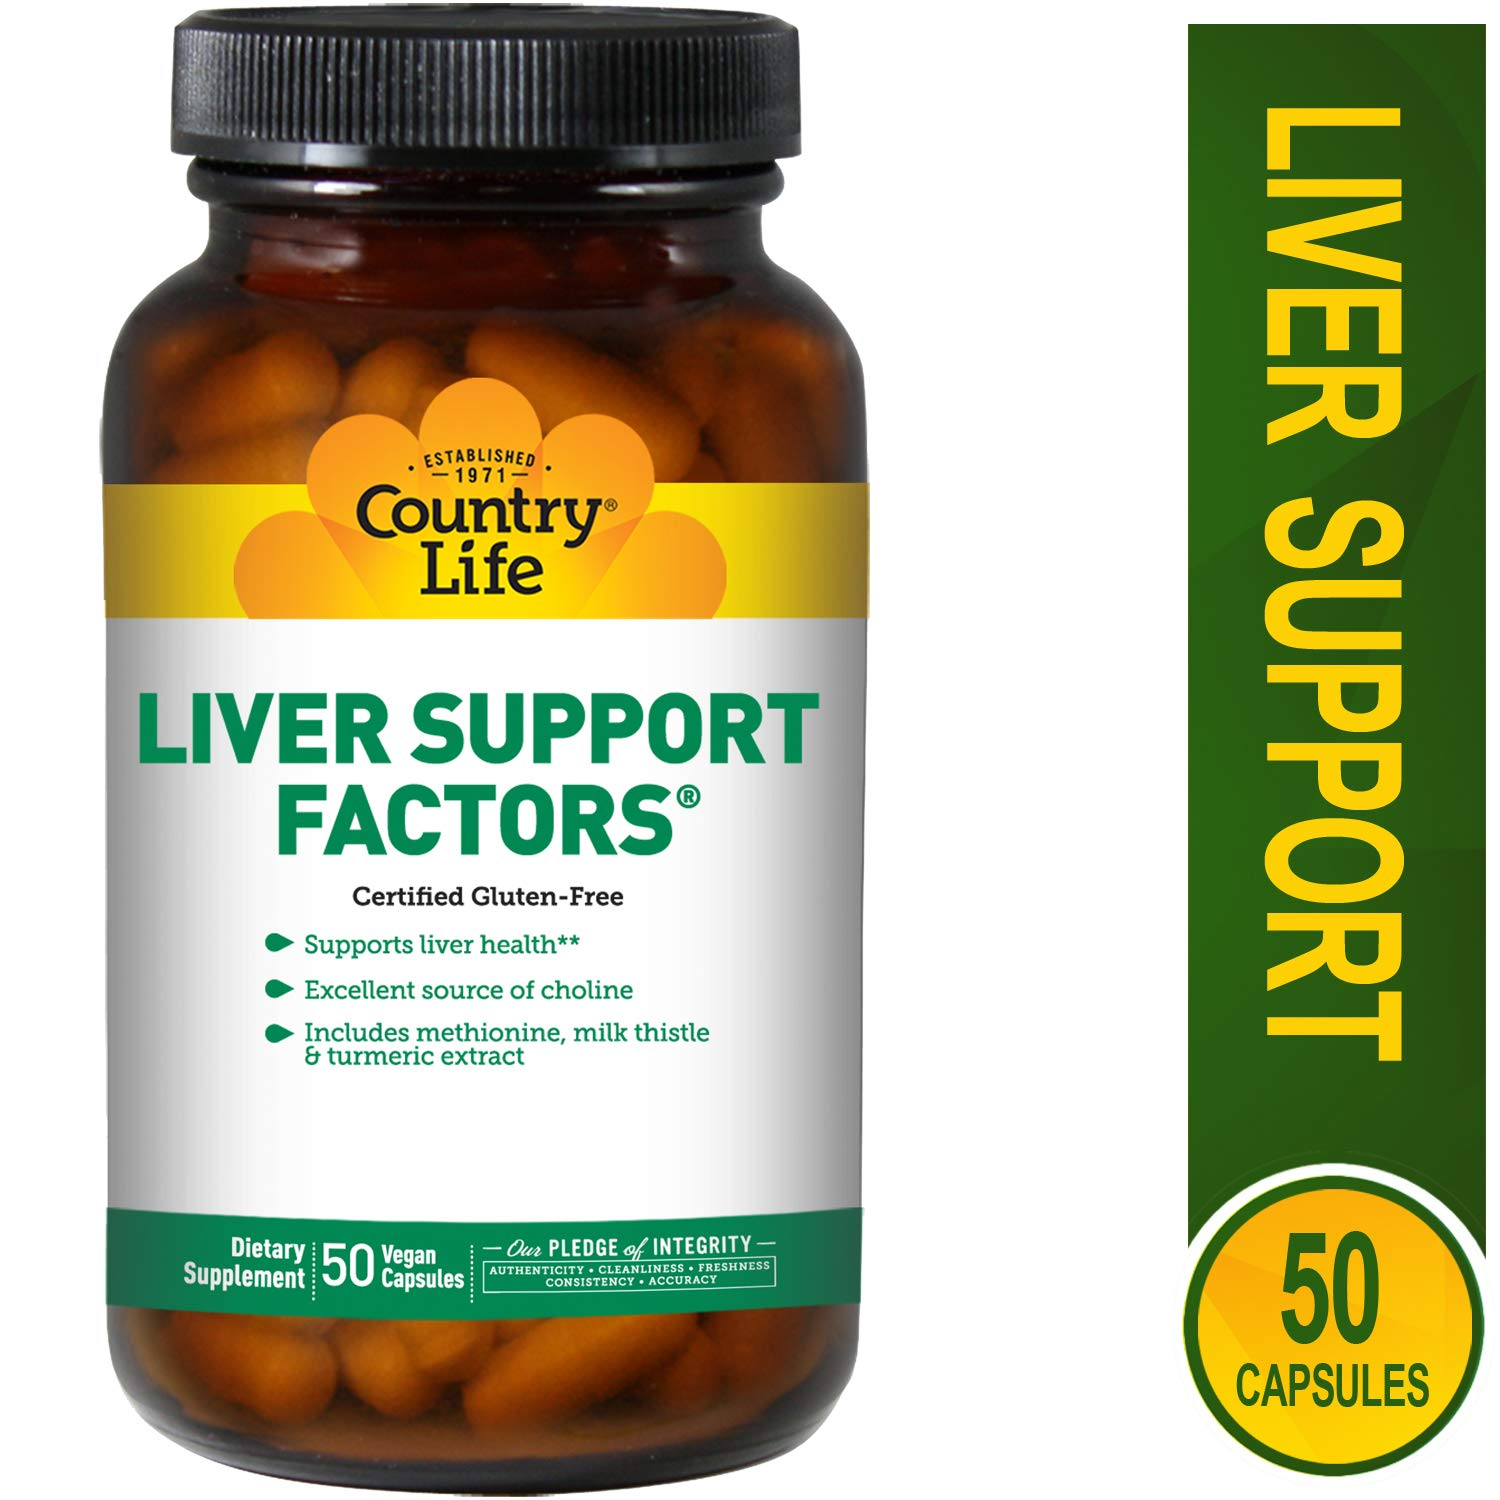 Country Life Liver Support Factors - 100 Vegan Capsules - Liver health - Excellent source of choline - Gluten-free by Country Life